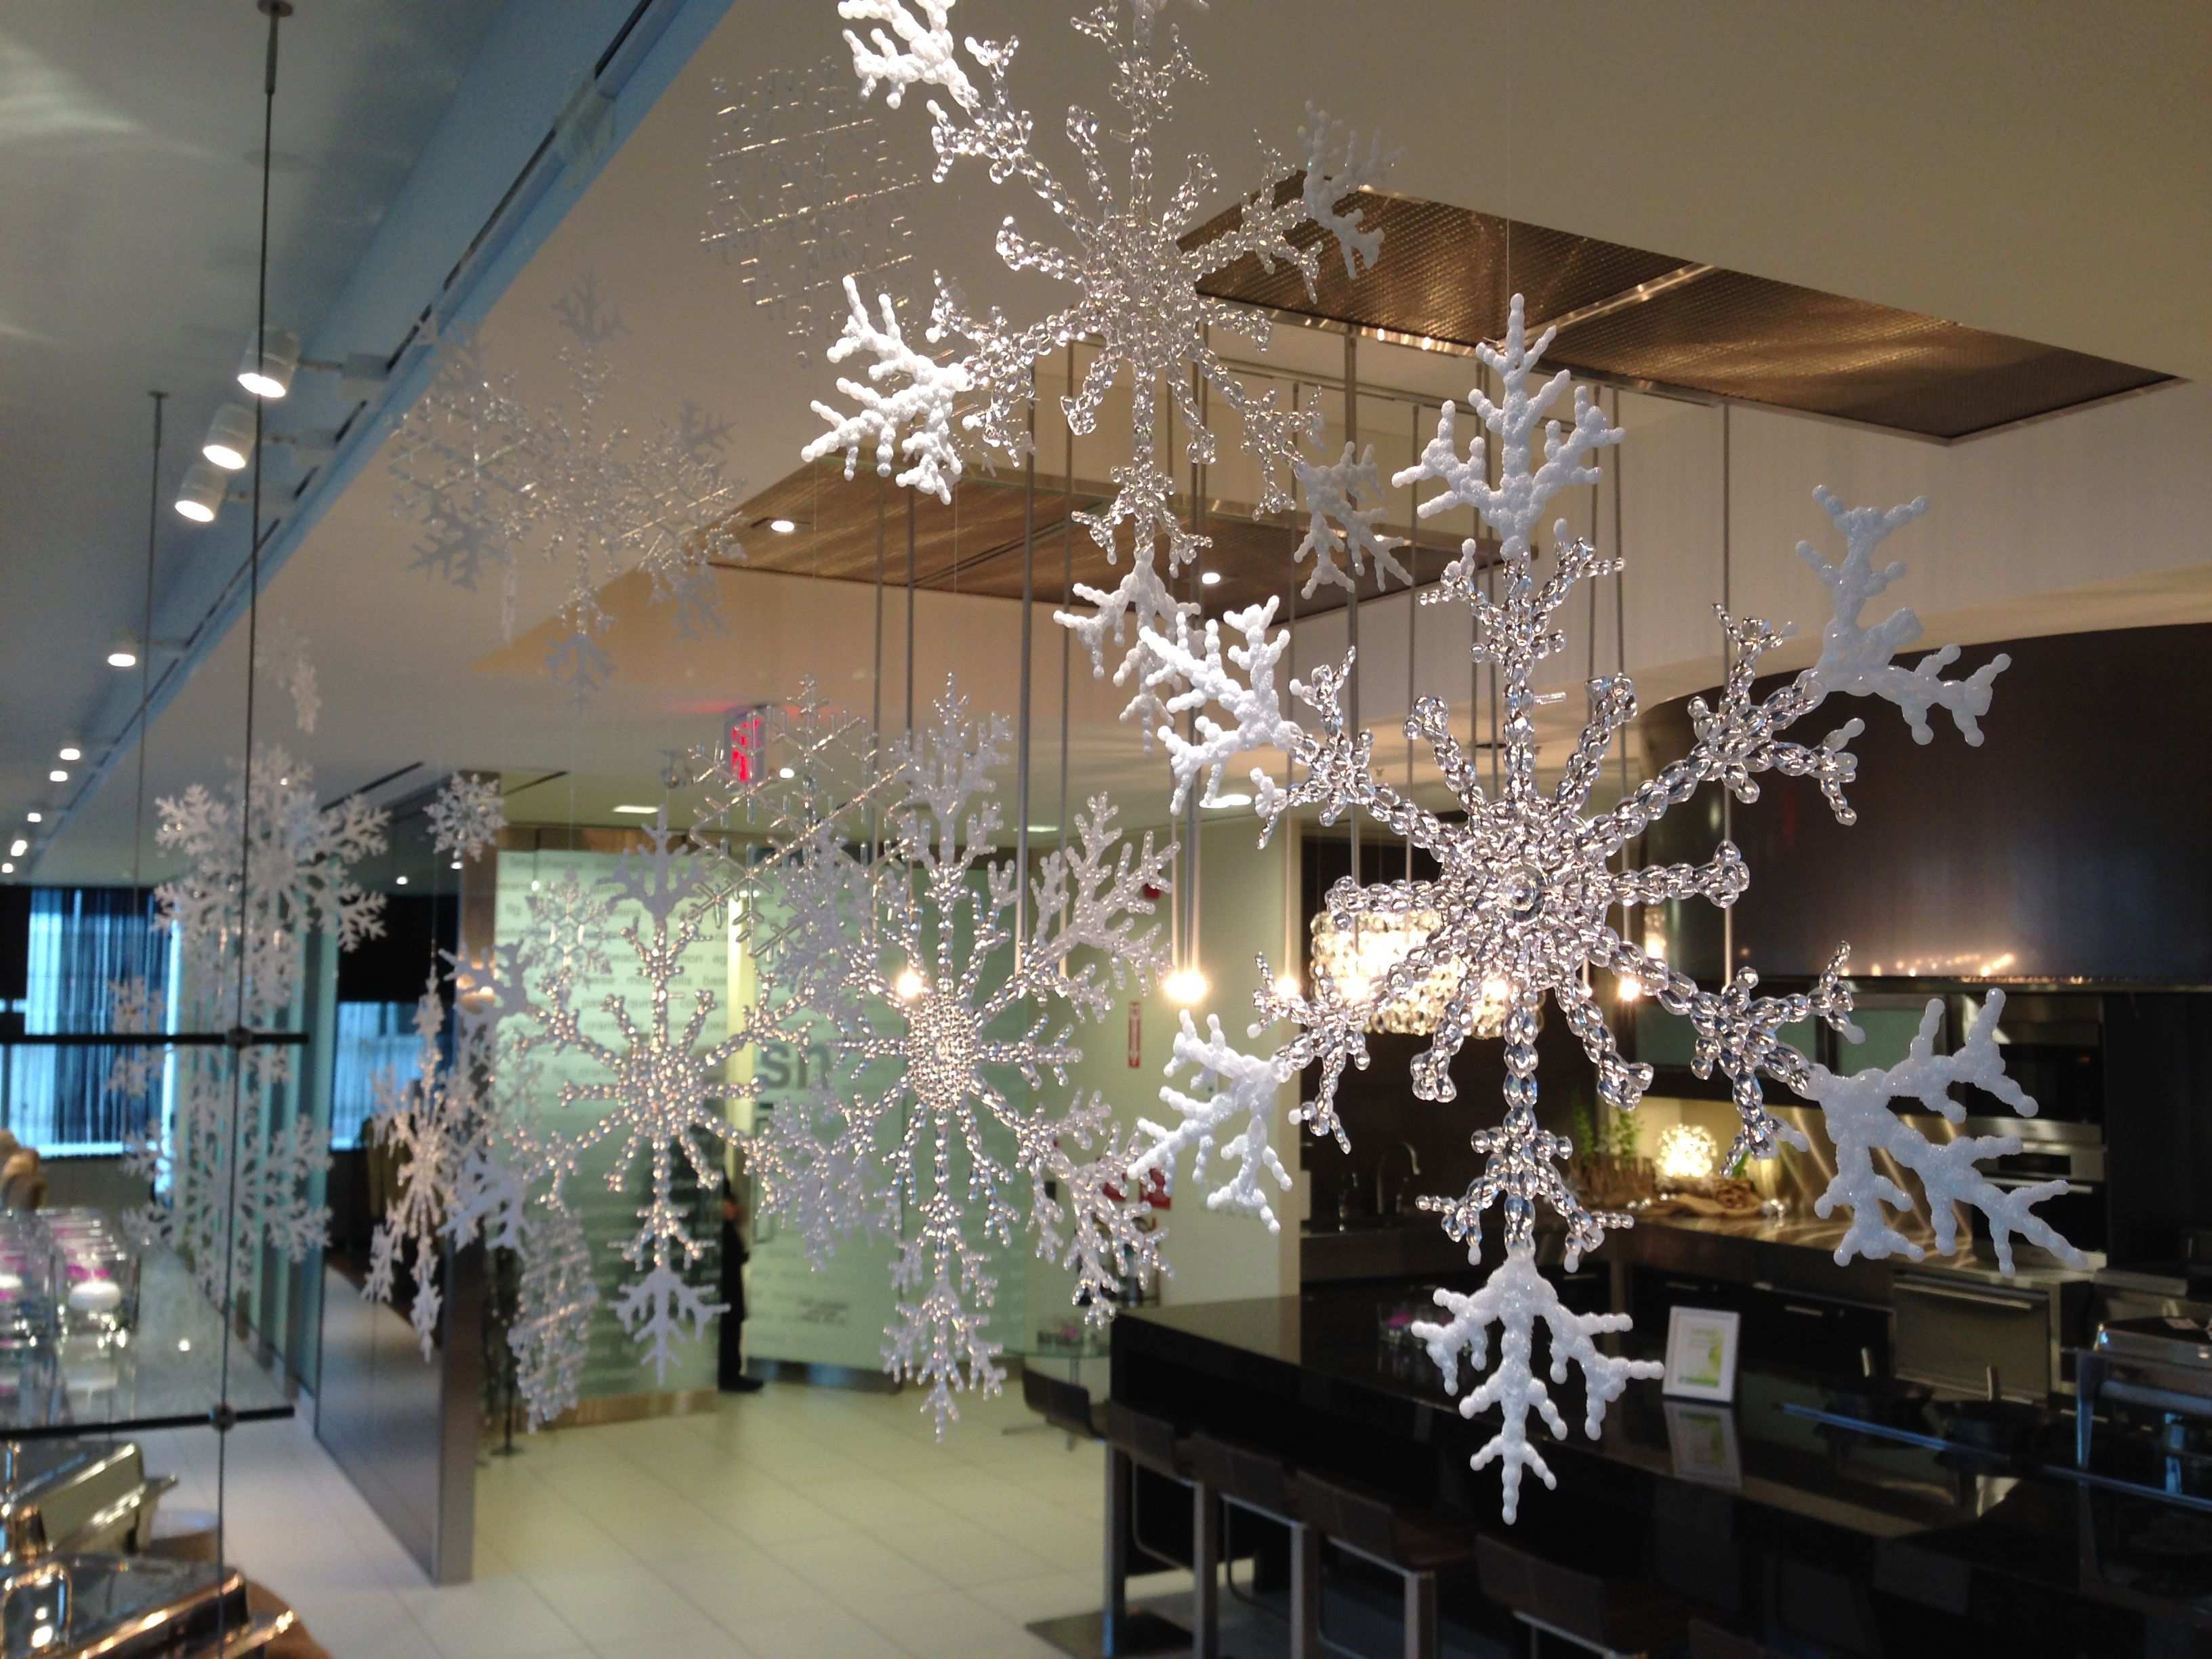 Hang Different Sized Snowflakes With Fishing Line For A